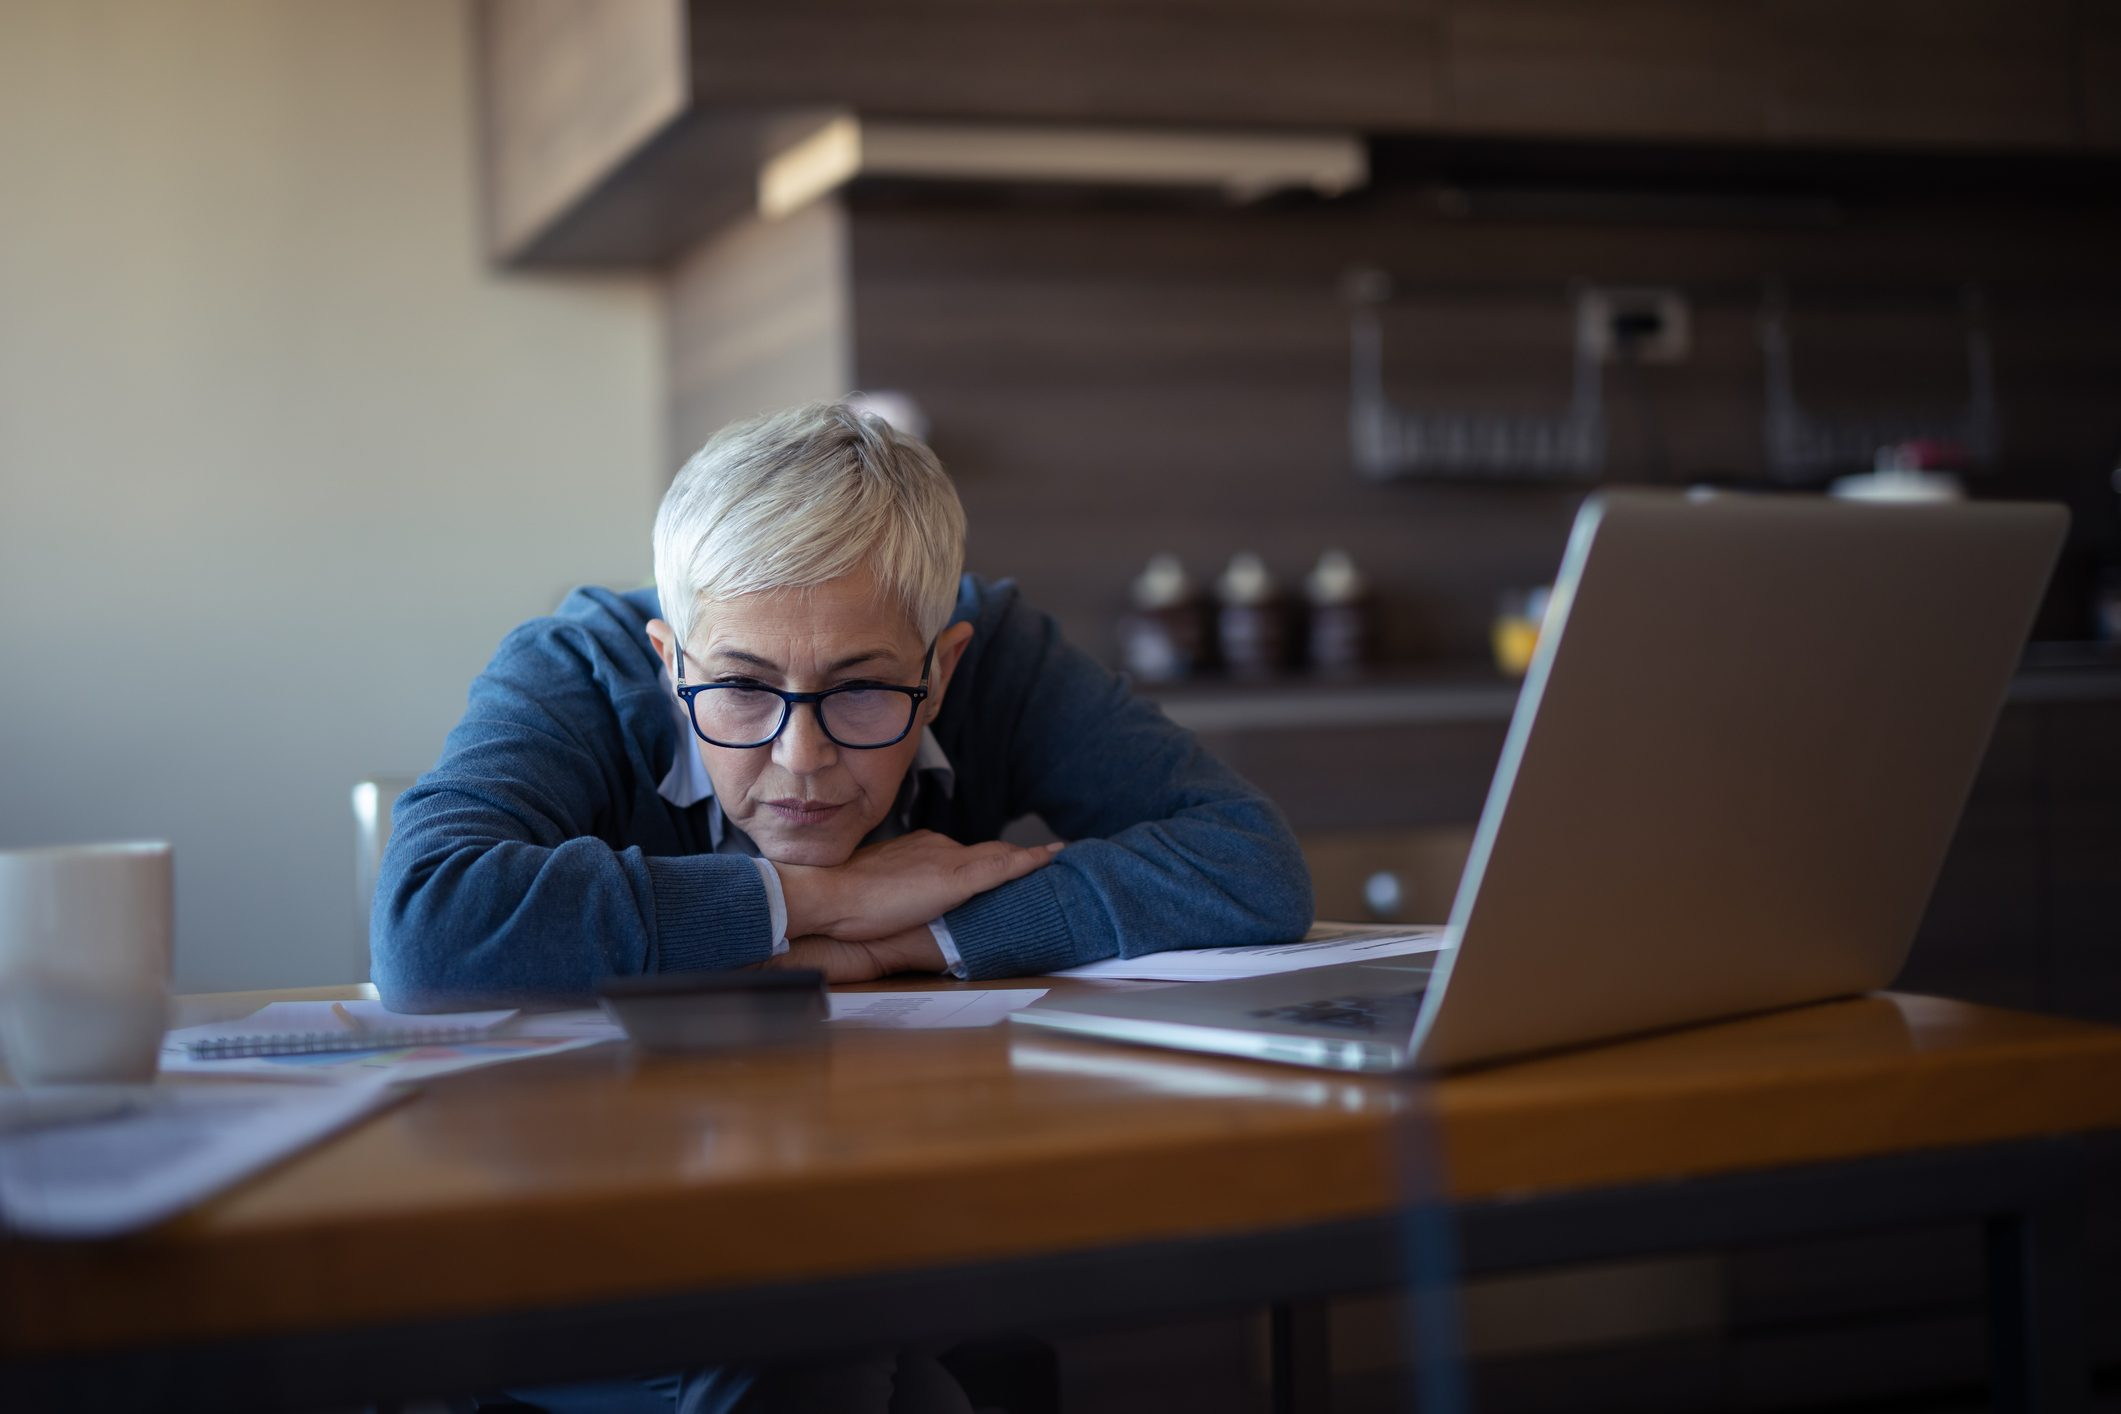 woman stressed out about work